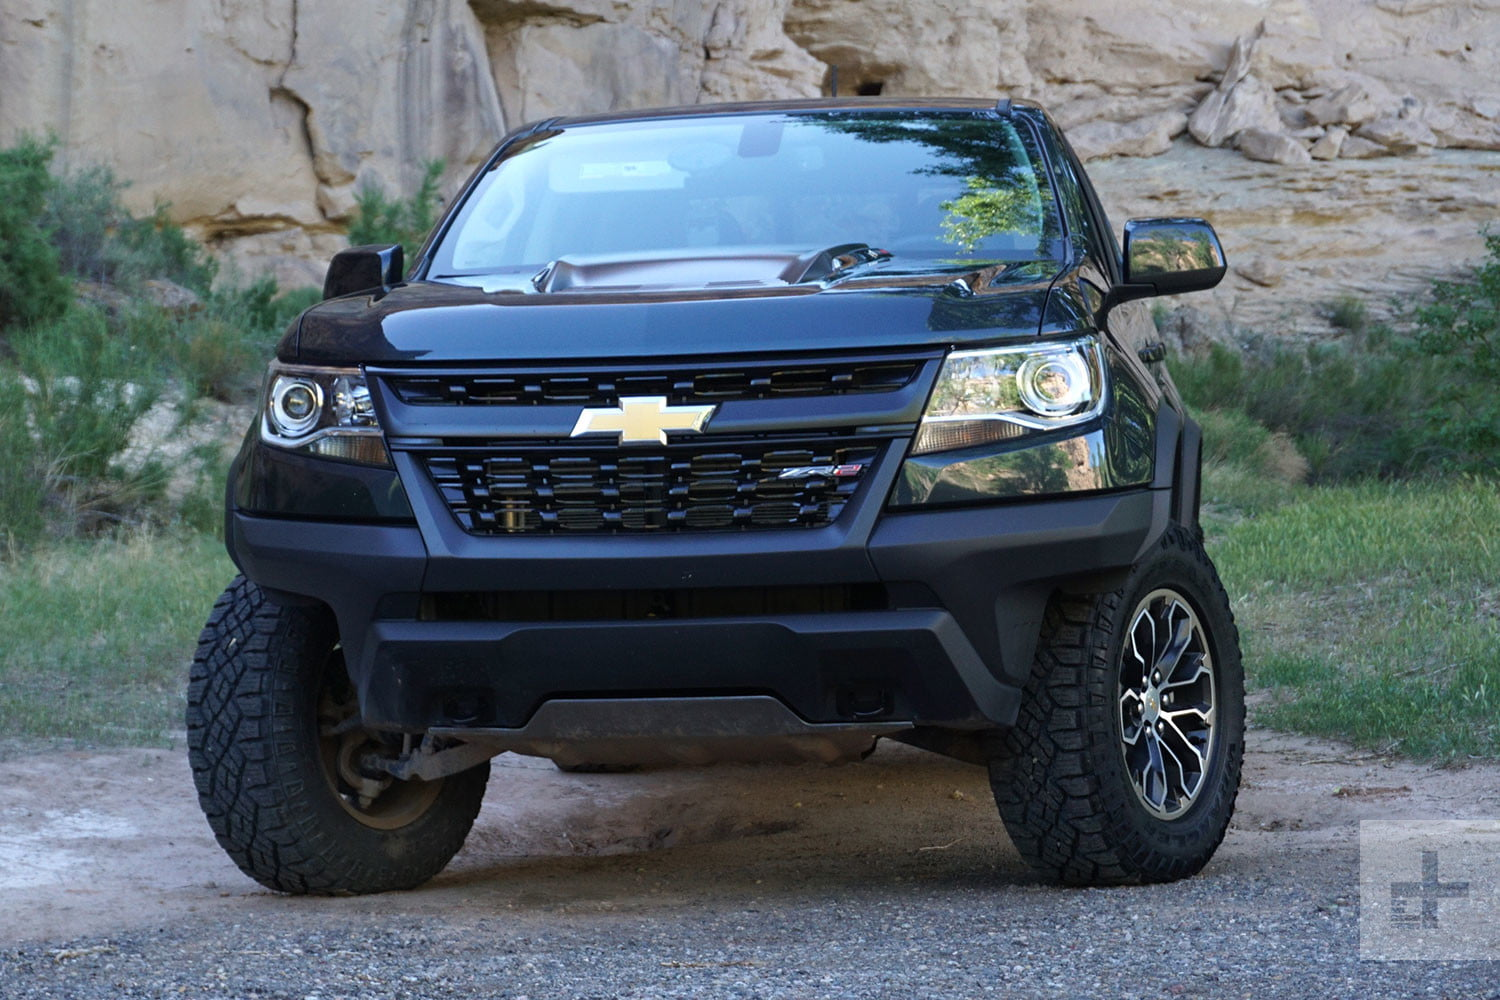 2017 Chevy Colorado Zr2 >> 2017 Chevrolet Colorado ZR2 offers off-road capability and street manners | Digital Trends